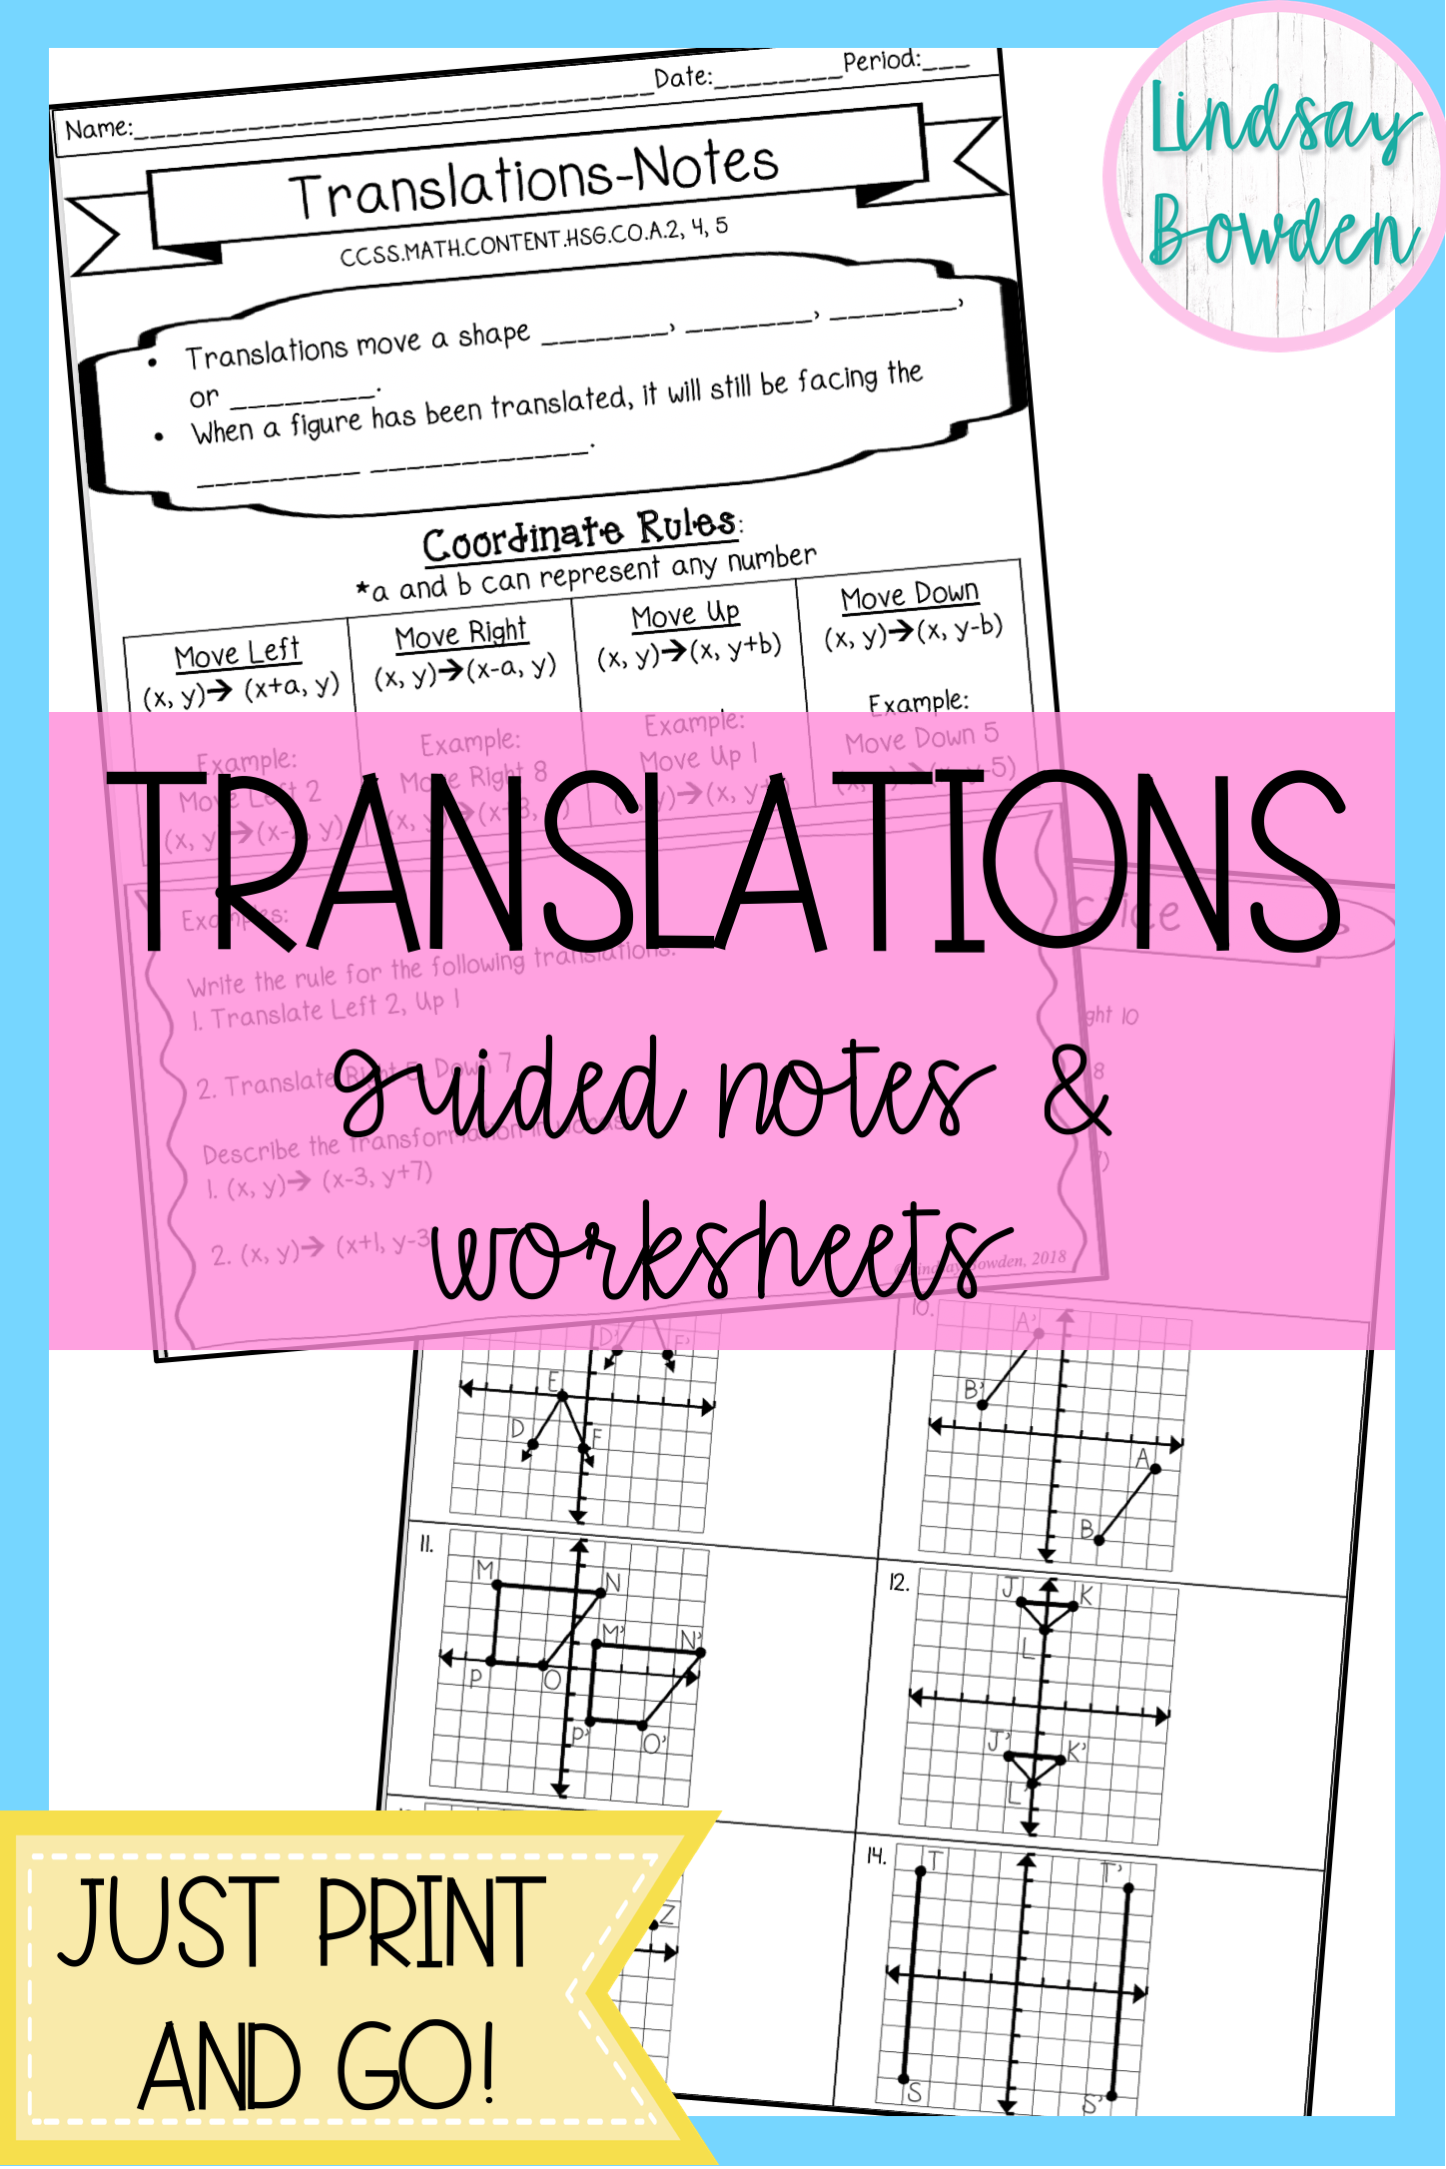 Translations Notes And Worksheet In